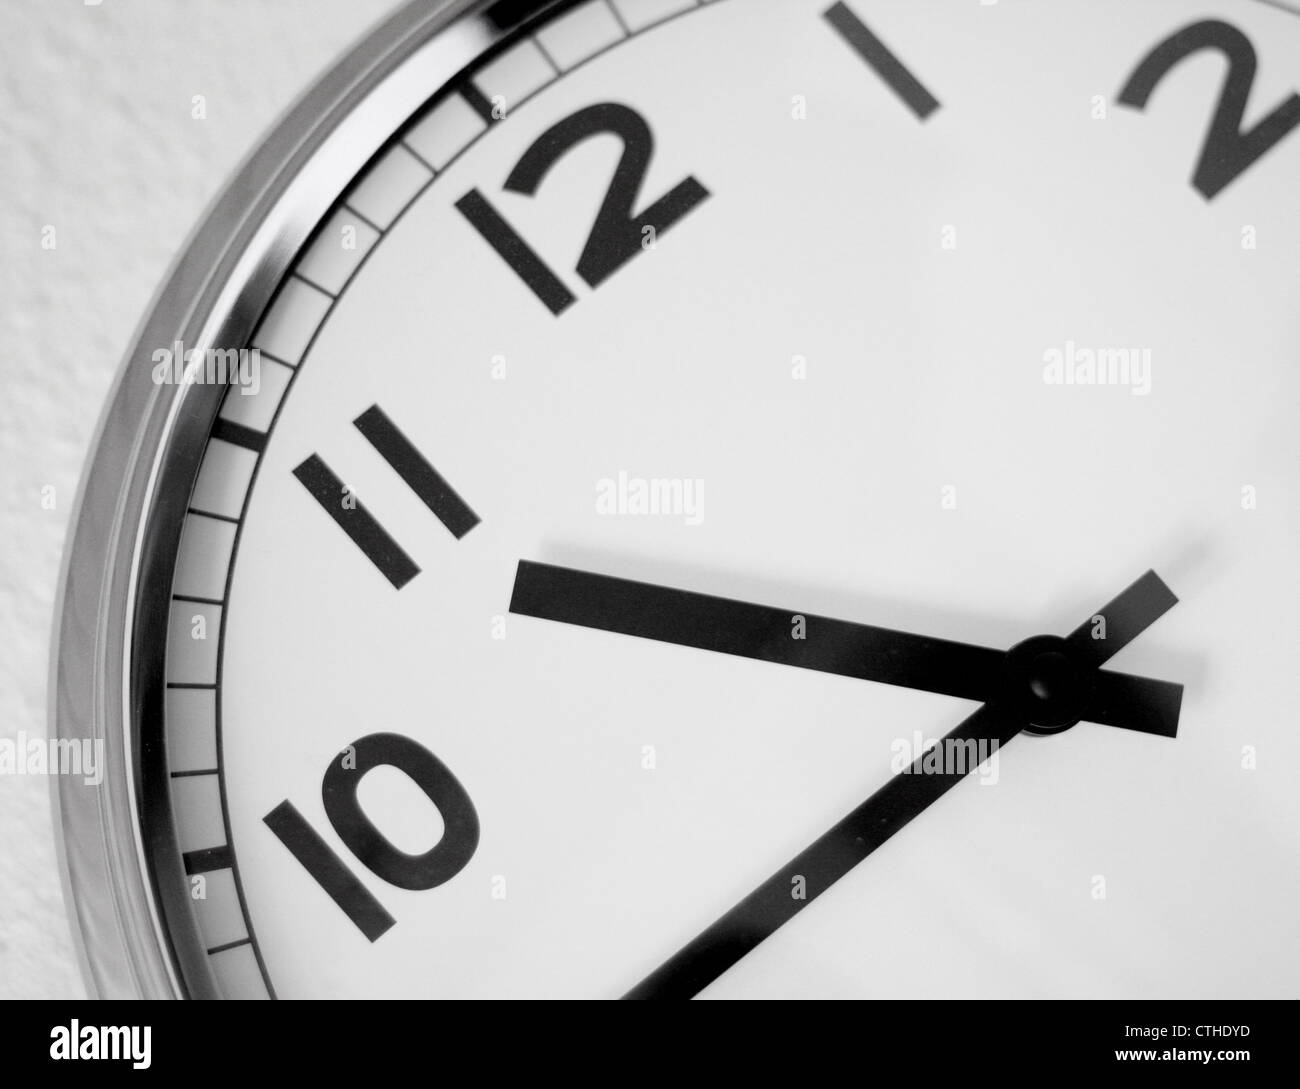 Clock - Stock Image